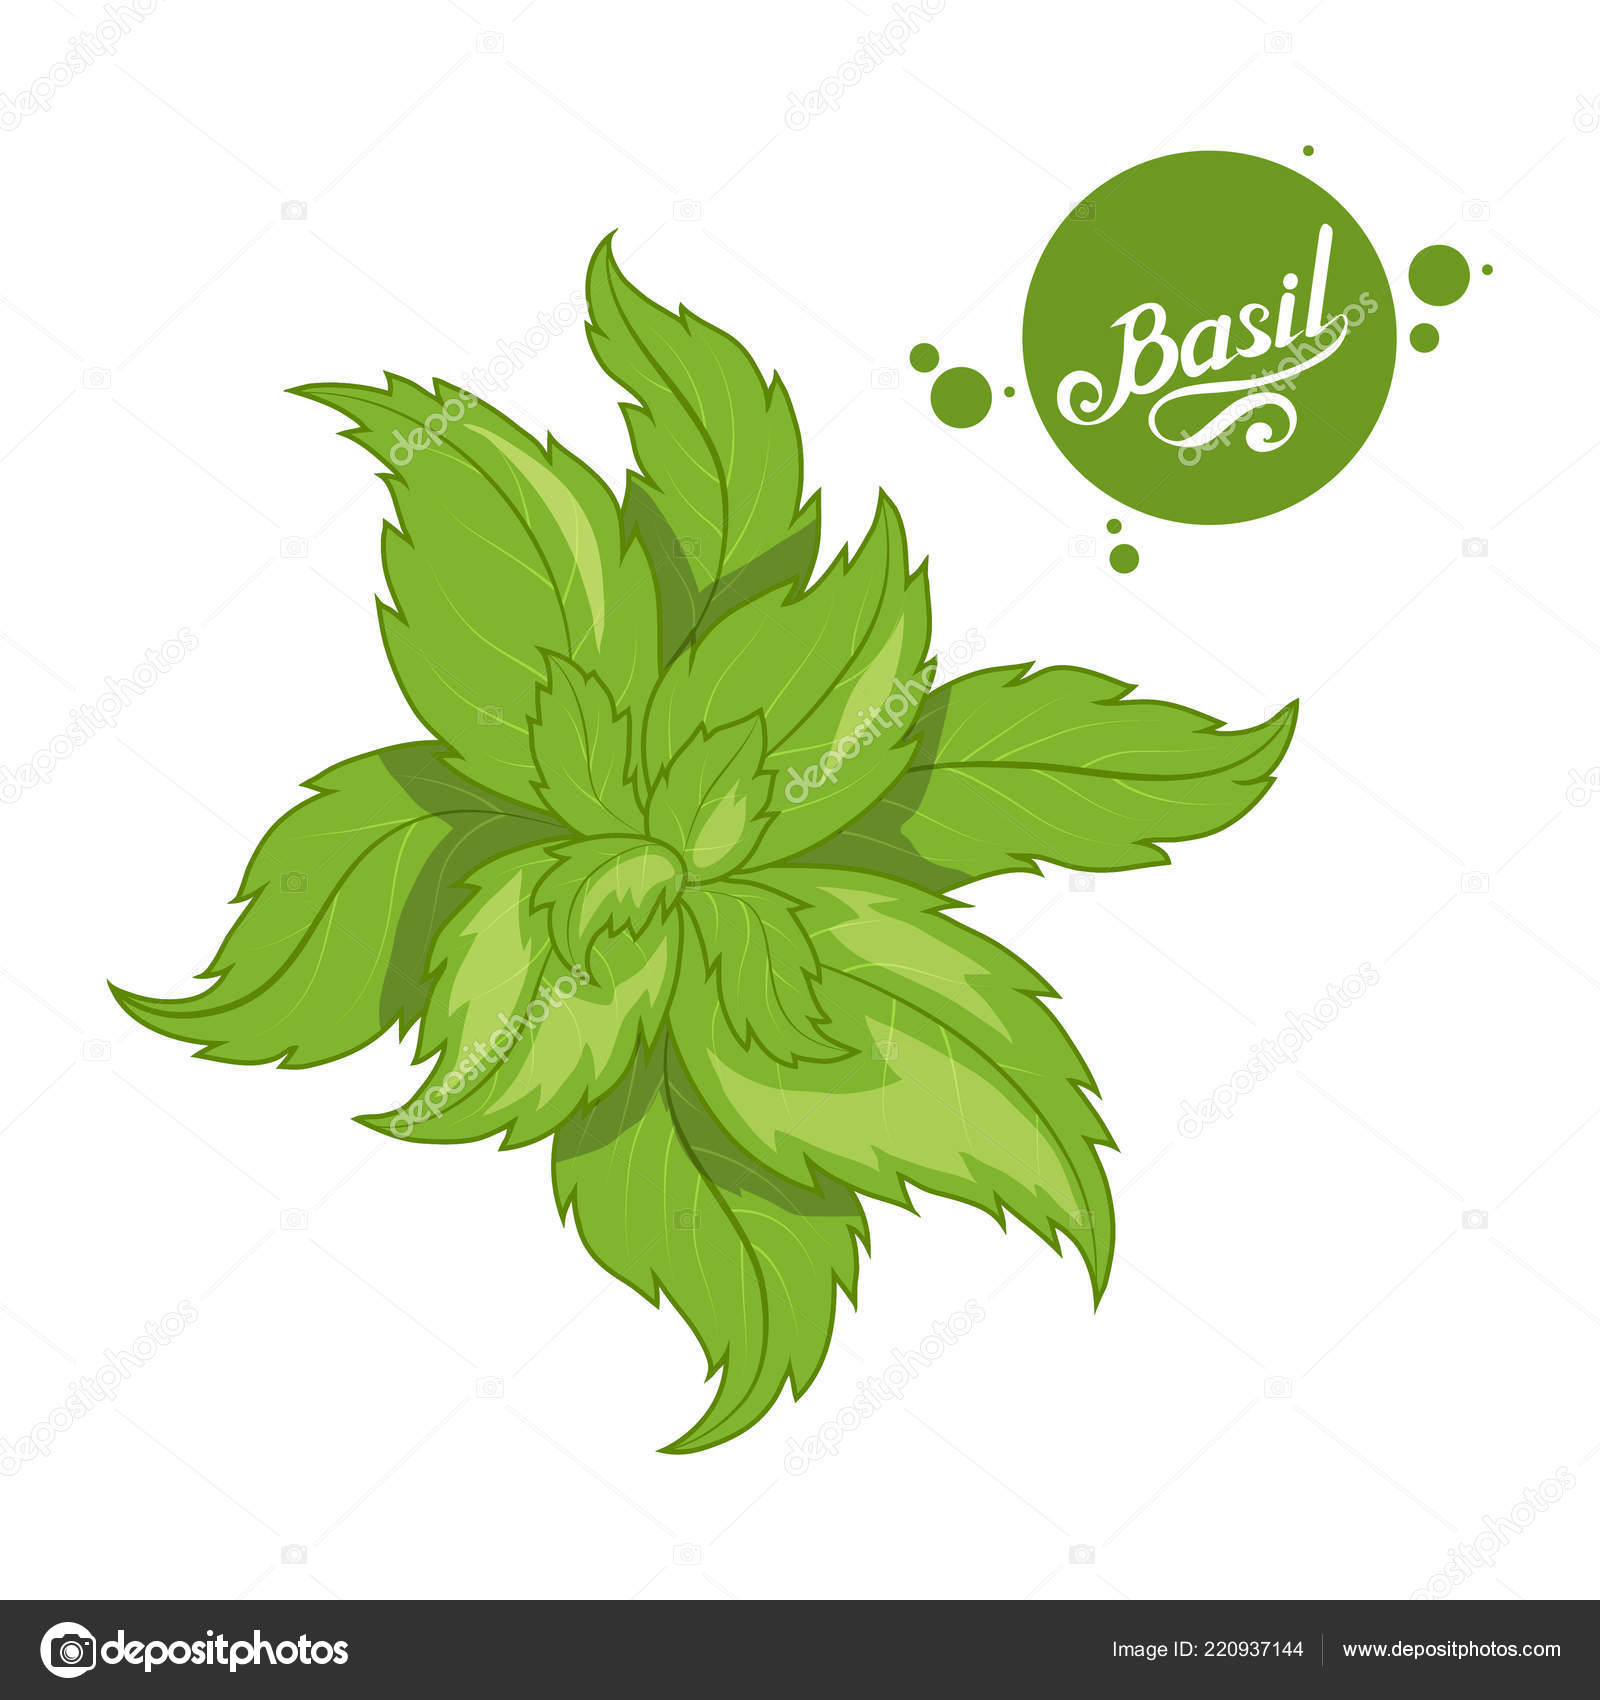 Basil Logo Hand Drawn Basil Leaves Spicy Ingredient Green Basil